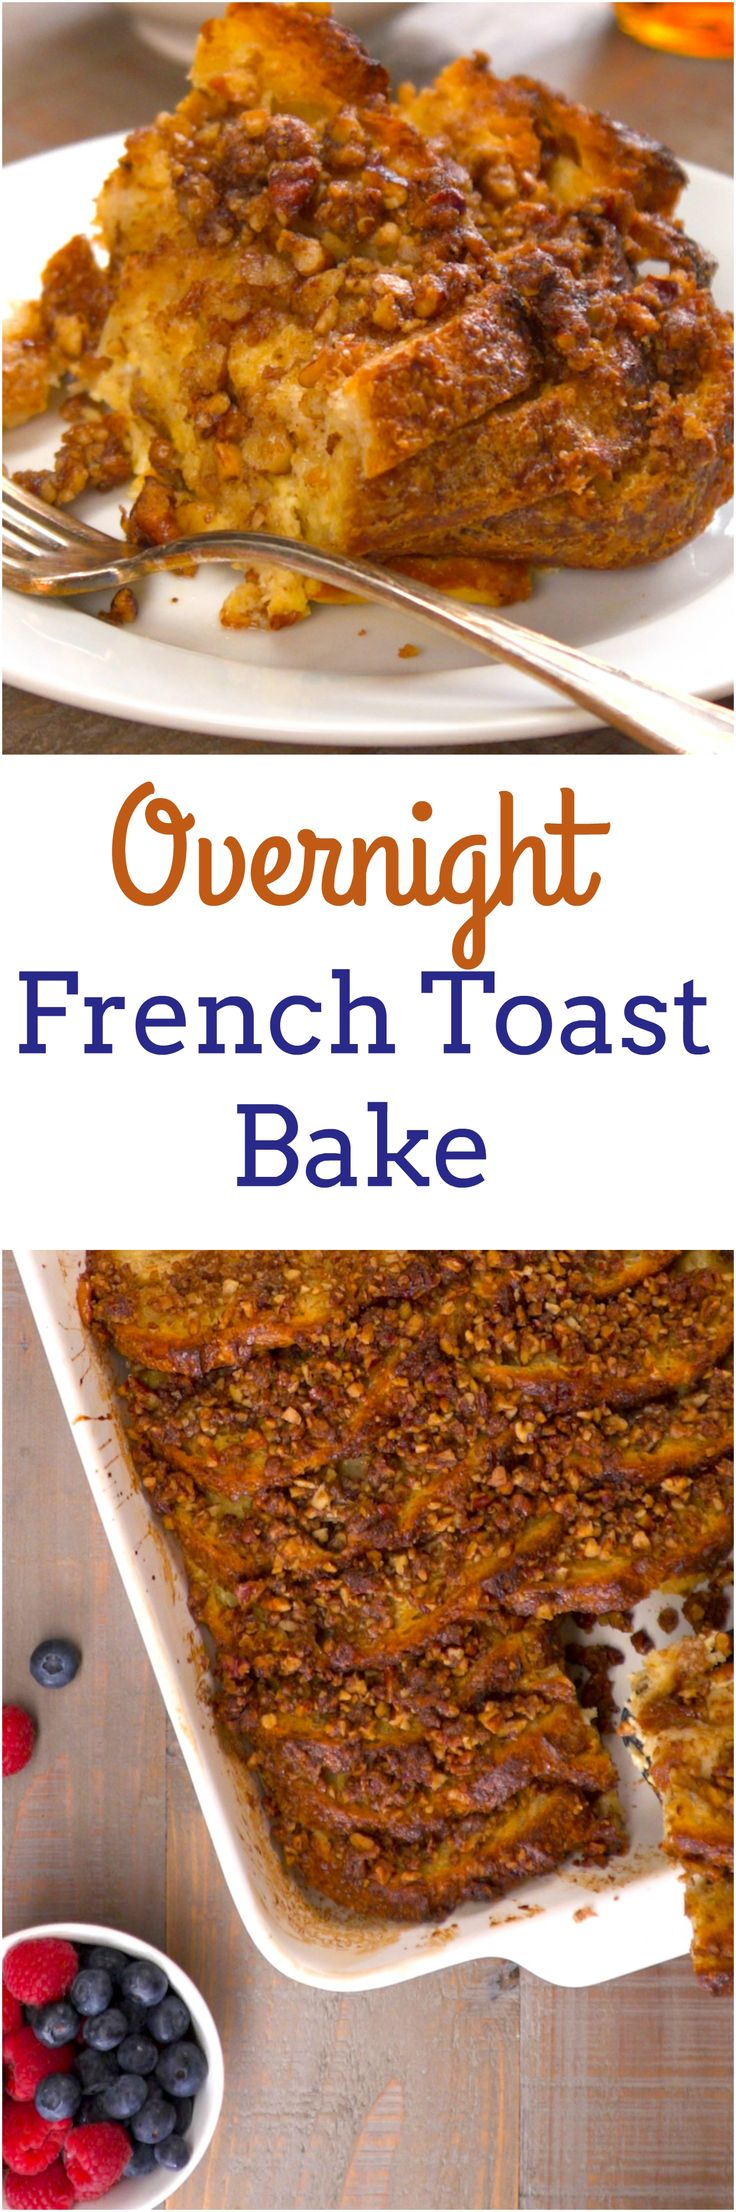 French toast is one of our favorites for Sunday brunch, but it's not the best when you need to feed a crowd. Our French toast bake solves that problem deliciously: it's basically a big batch of cinnamony French toast baked in the oven, with a crazy good pecan streusel topping. Even better, you make it the night before so you can have both a lazy morning and a fancy brunch.